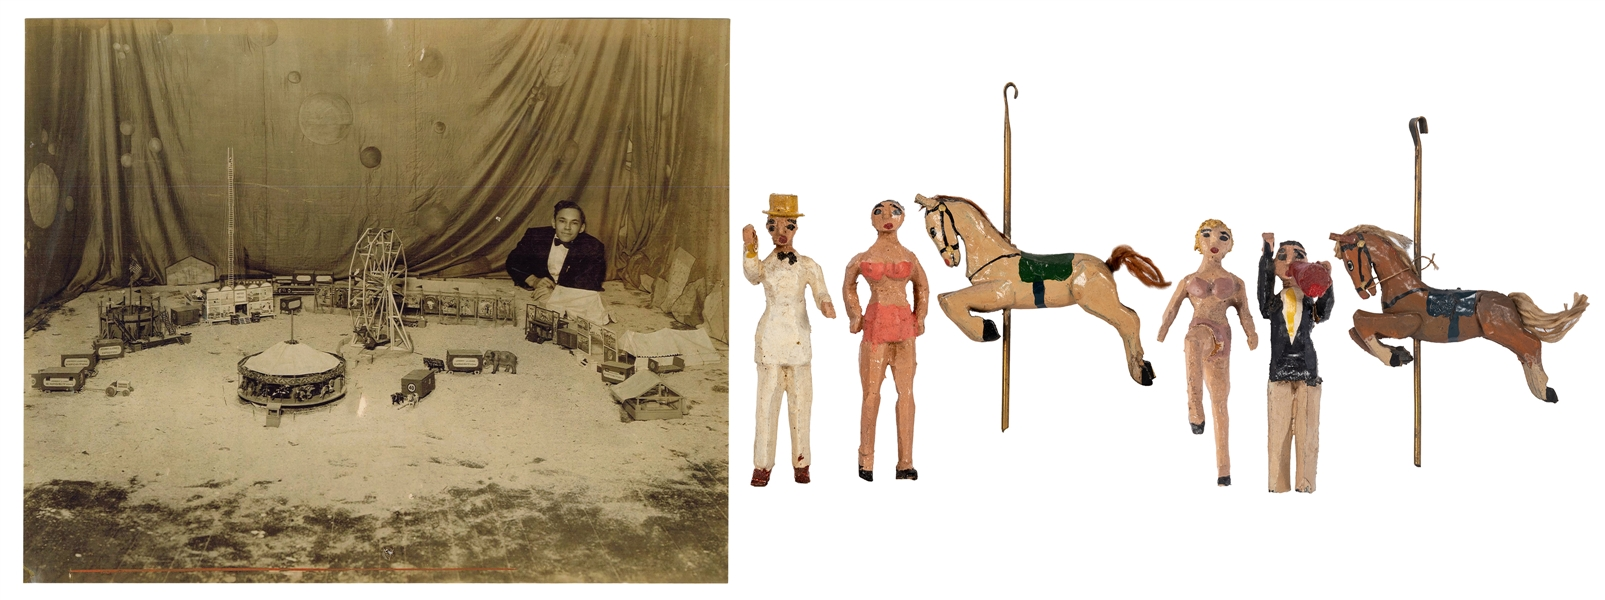 "Johnny Eck ""Pen Knife Circus"" Wooden Figurines."